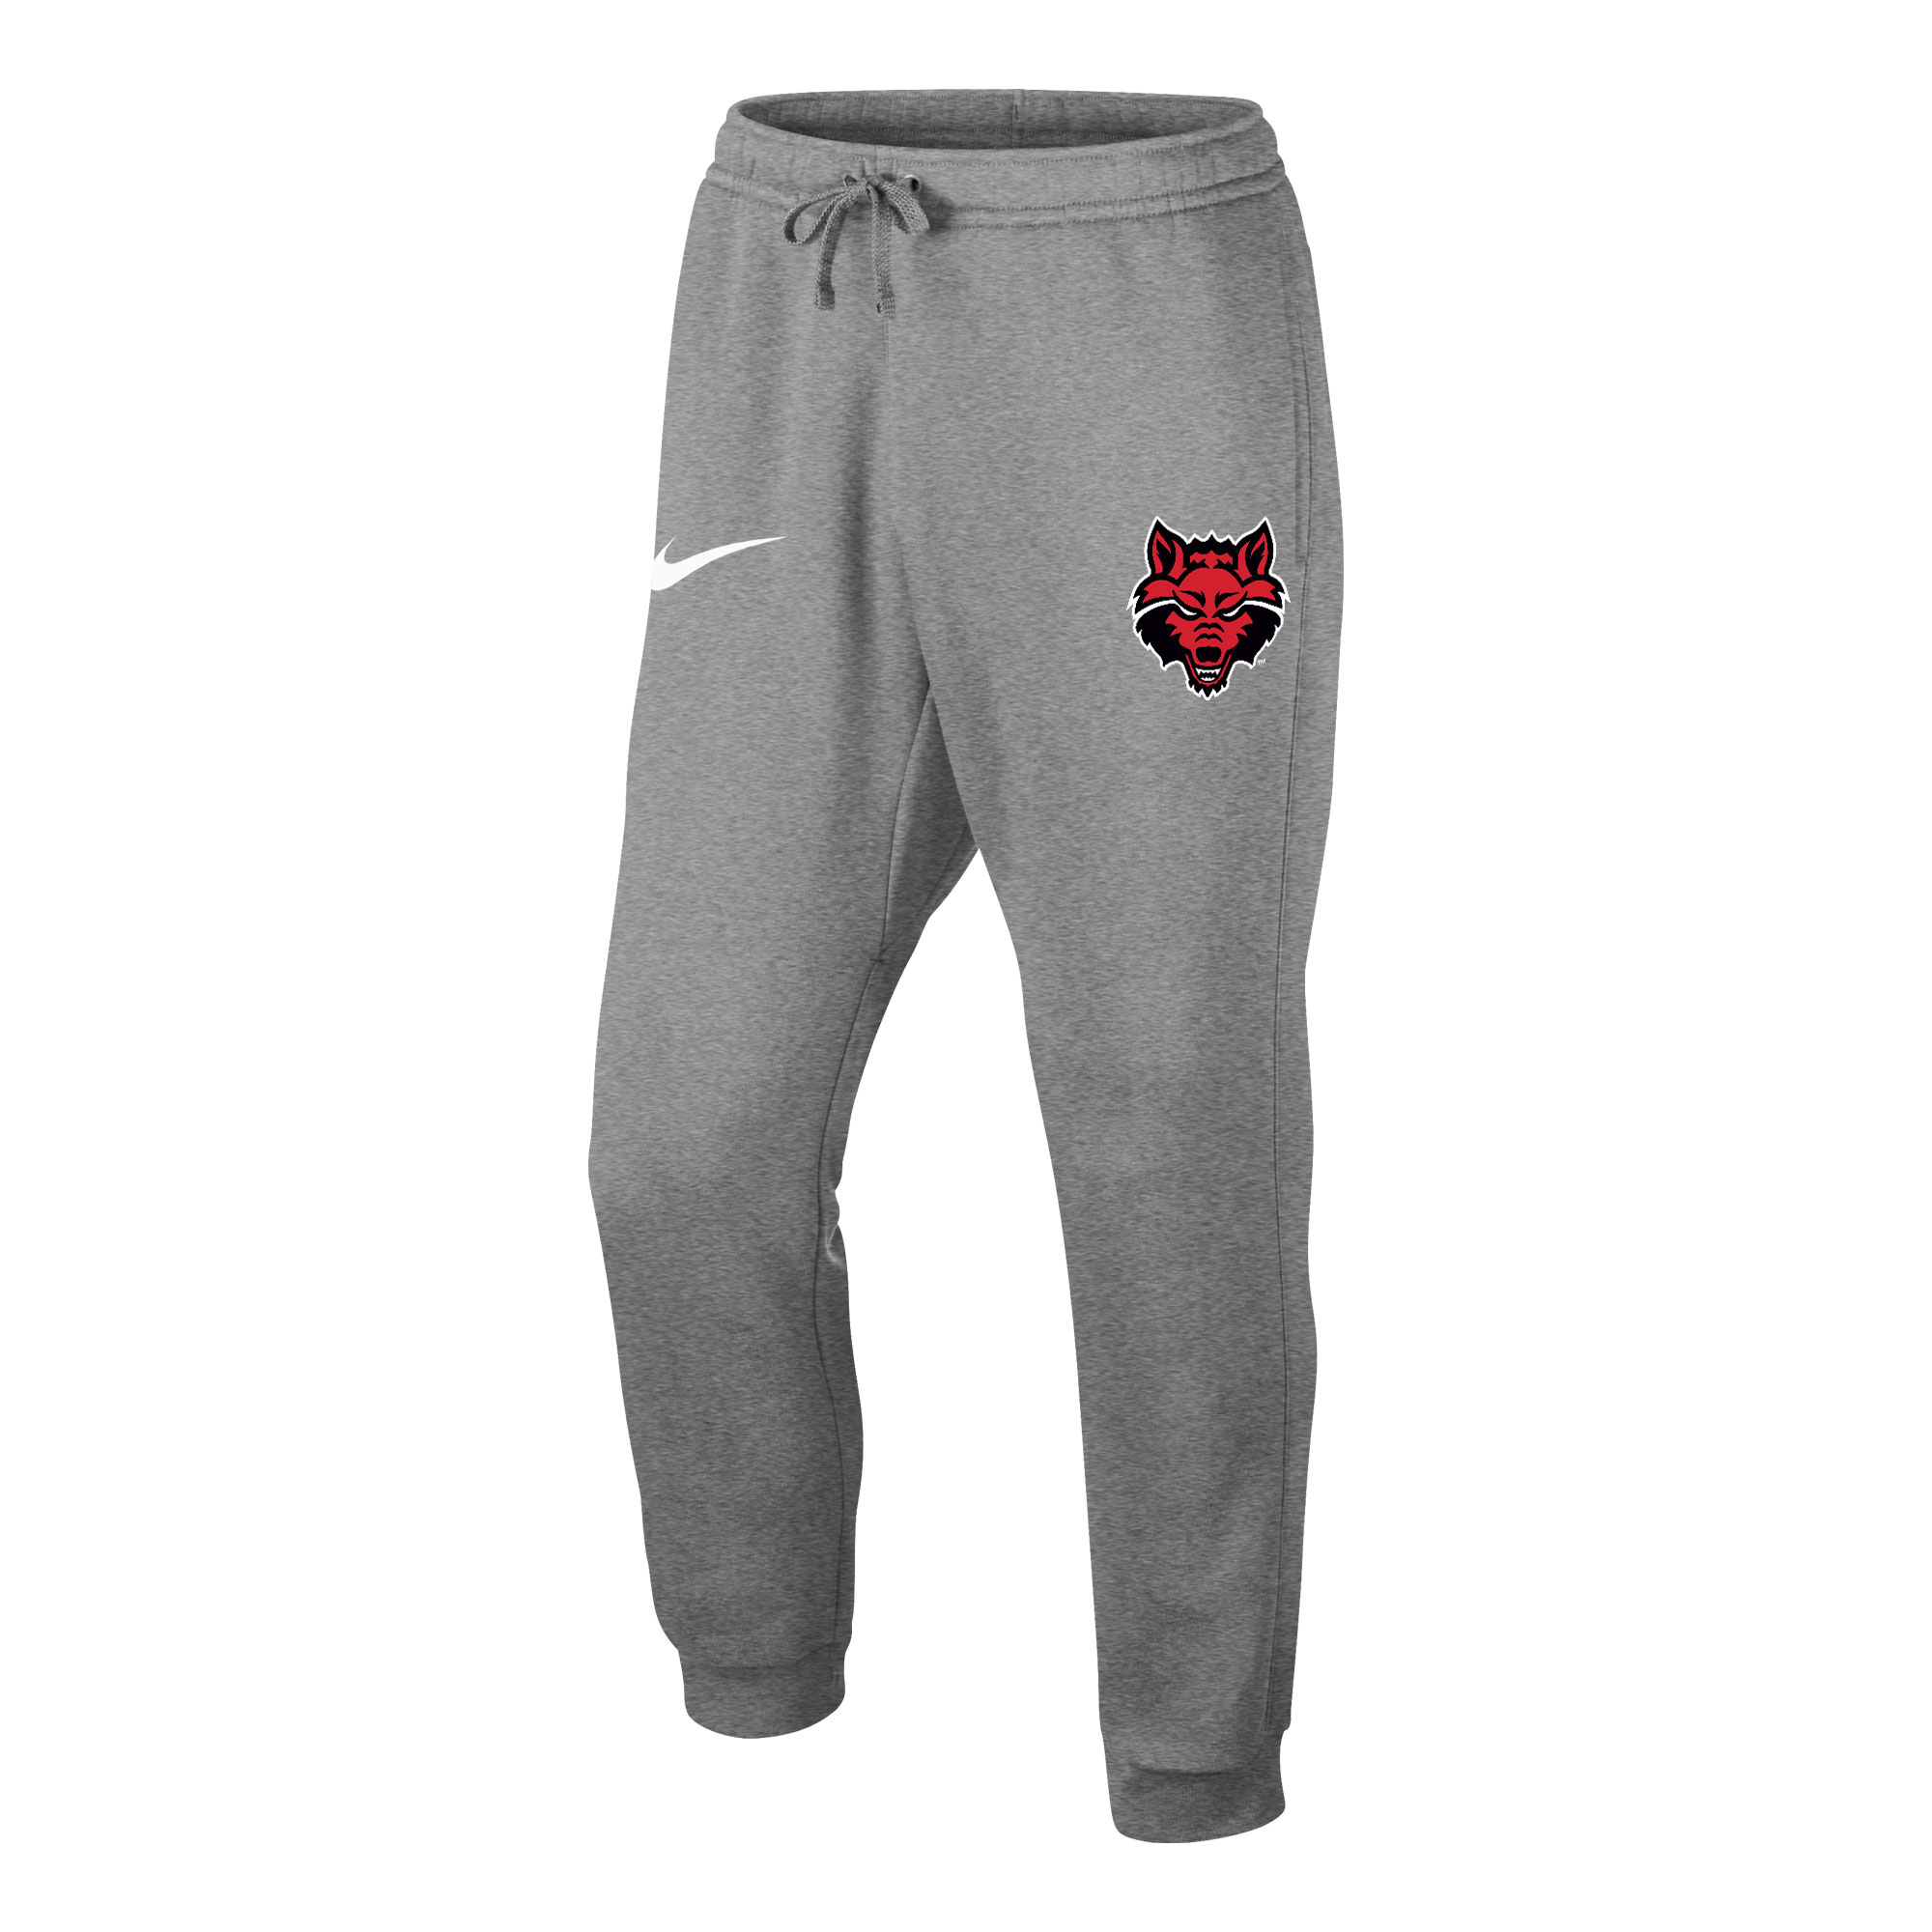 Red Wolves Club Fleece Jogger Pant